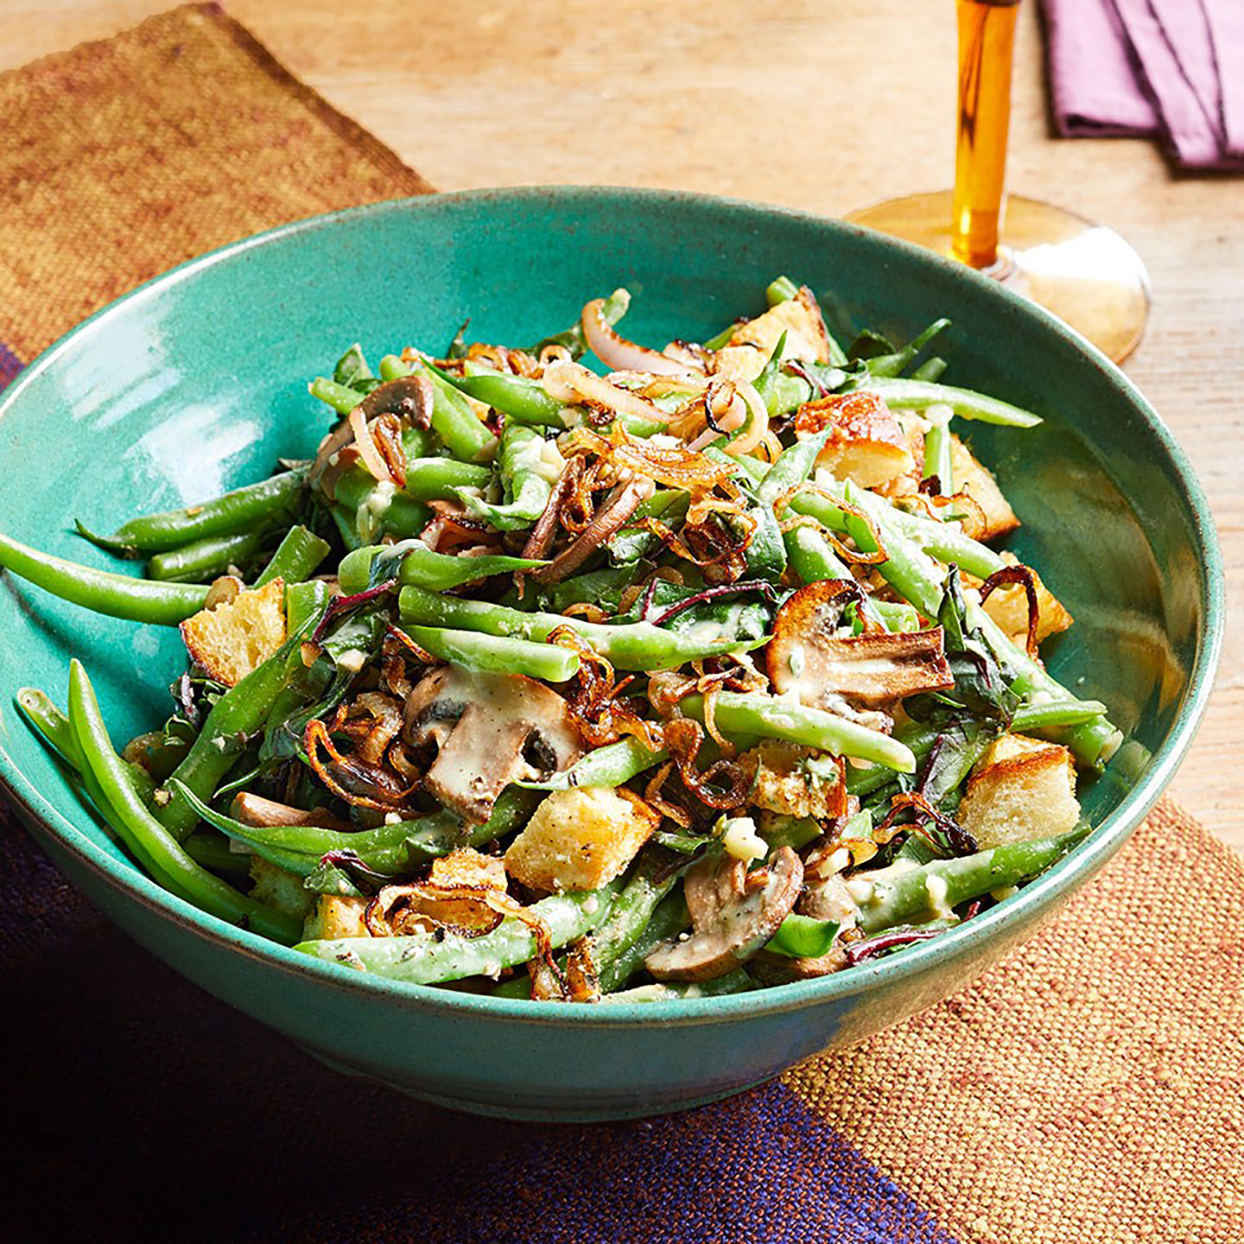 11 Green Bean Salad Recipes That Your Thanksgiving Wouldn't Be Complete Without